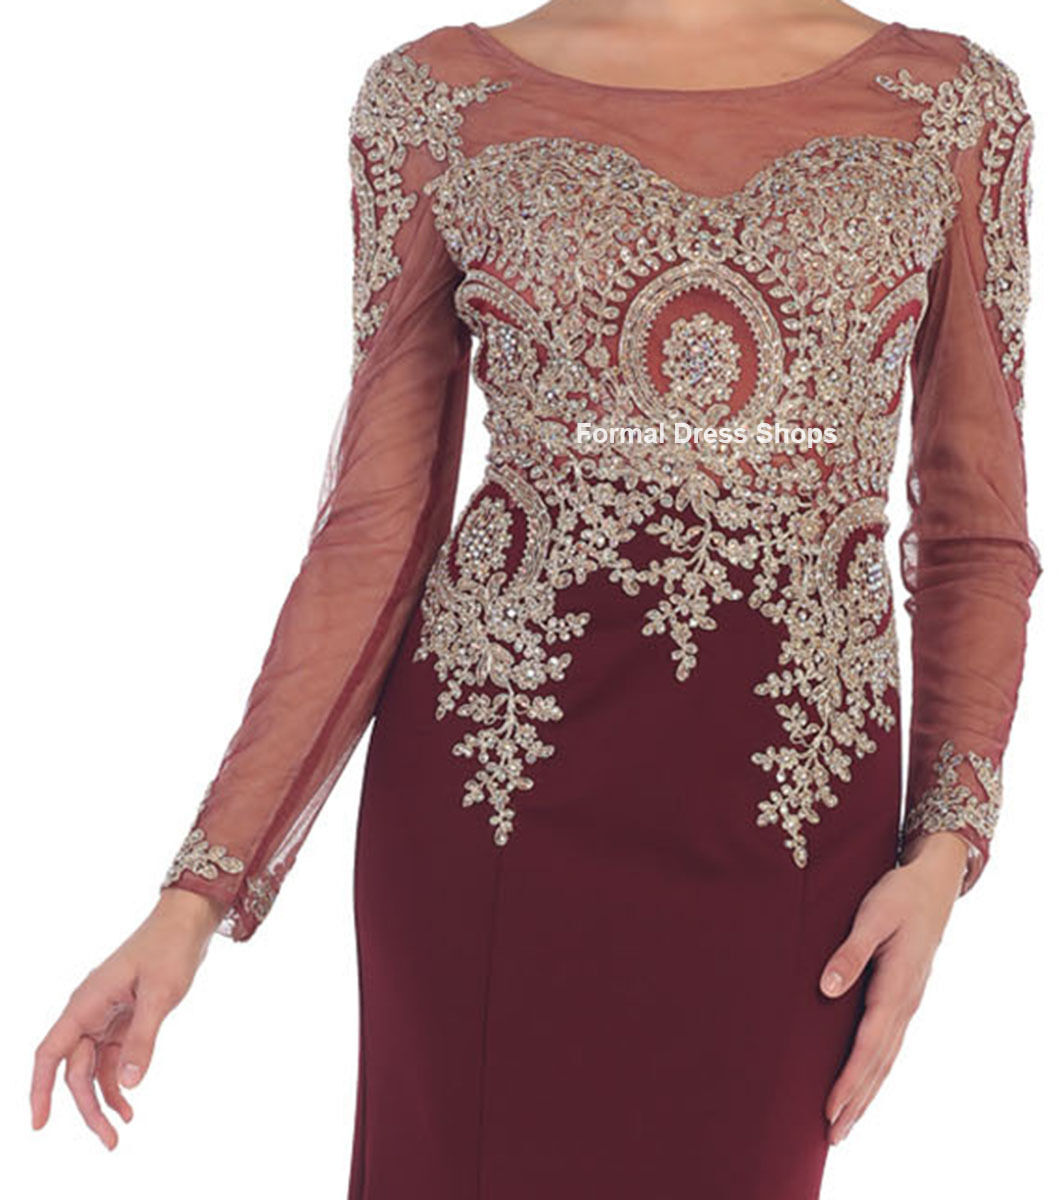 FORMAL PROM DRESSES STRETCHY EVENING MODERN MOTHER Of THE